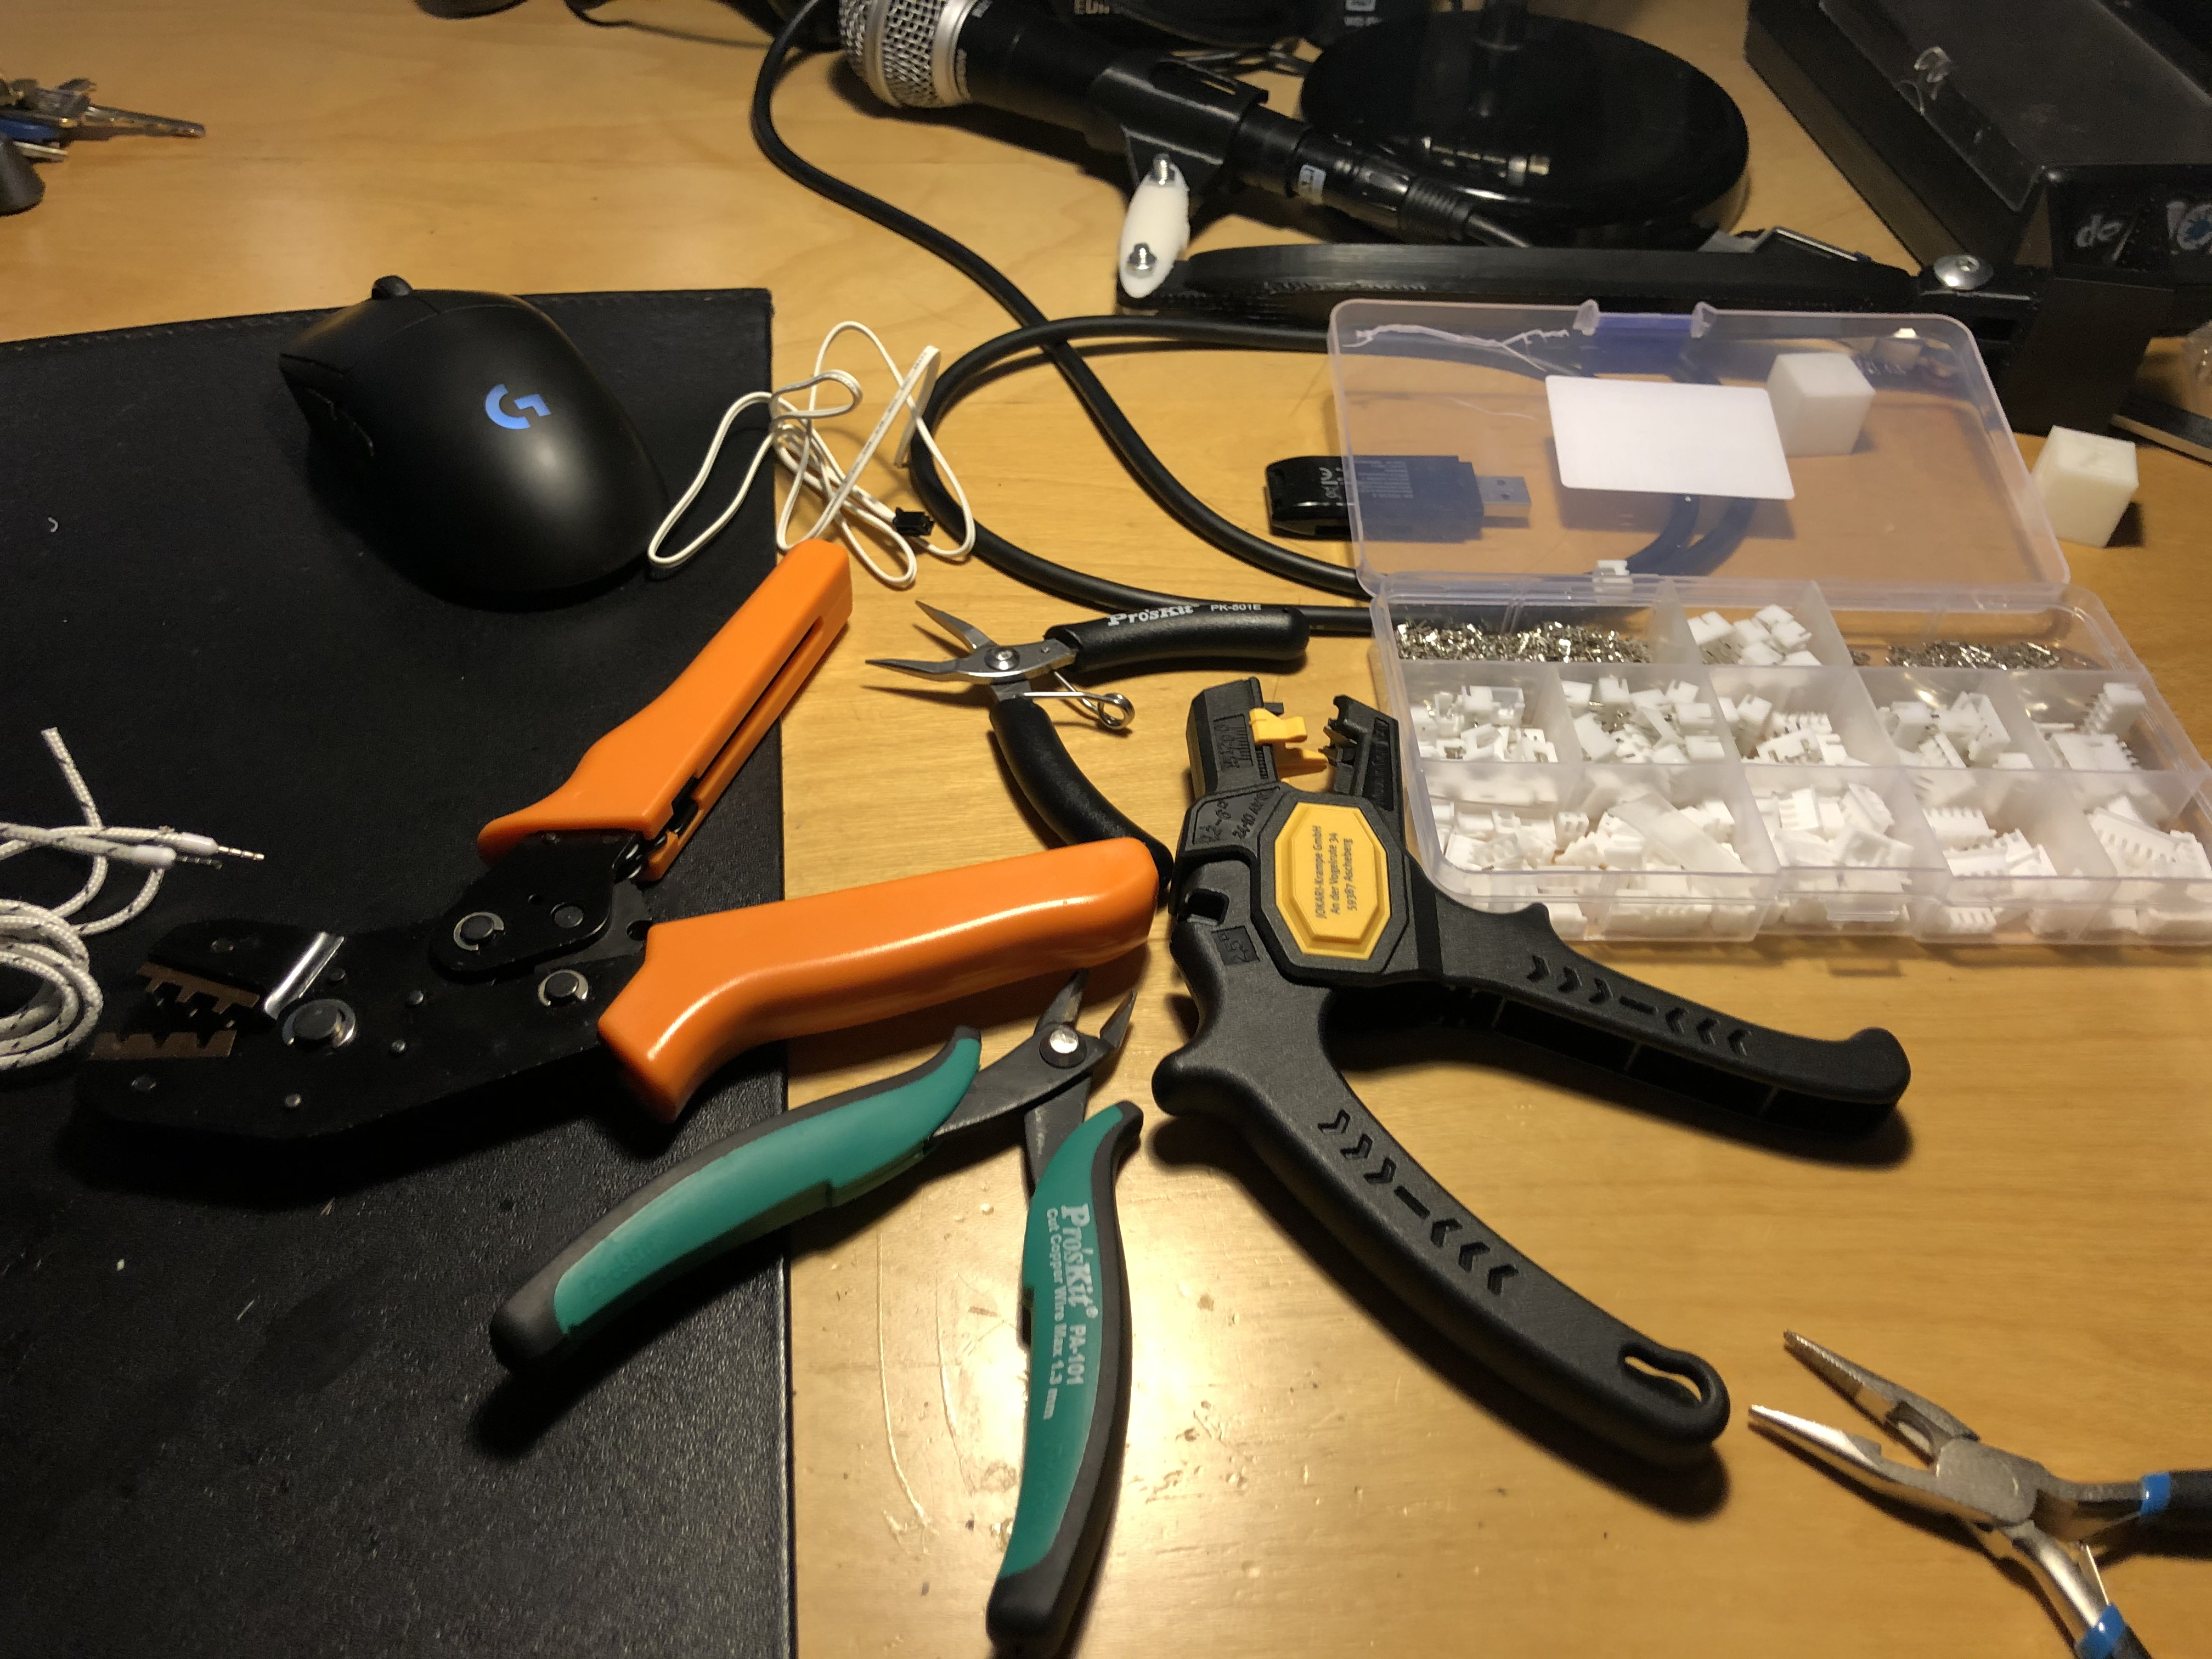 Crimping tools and wire strippers.